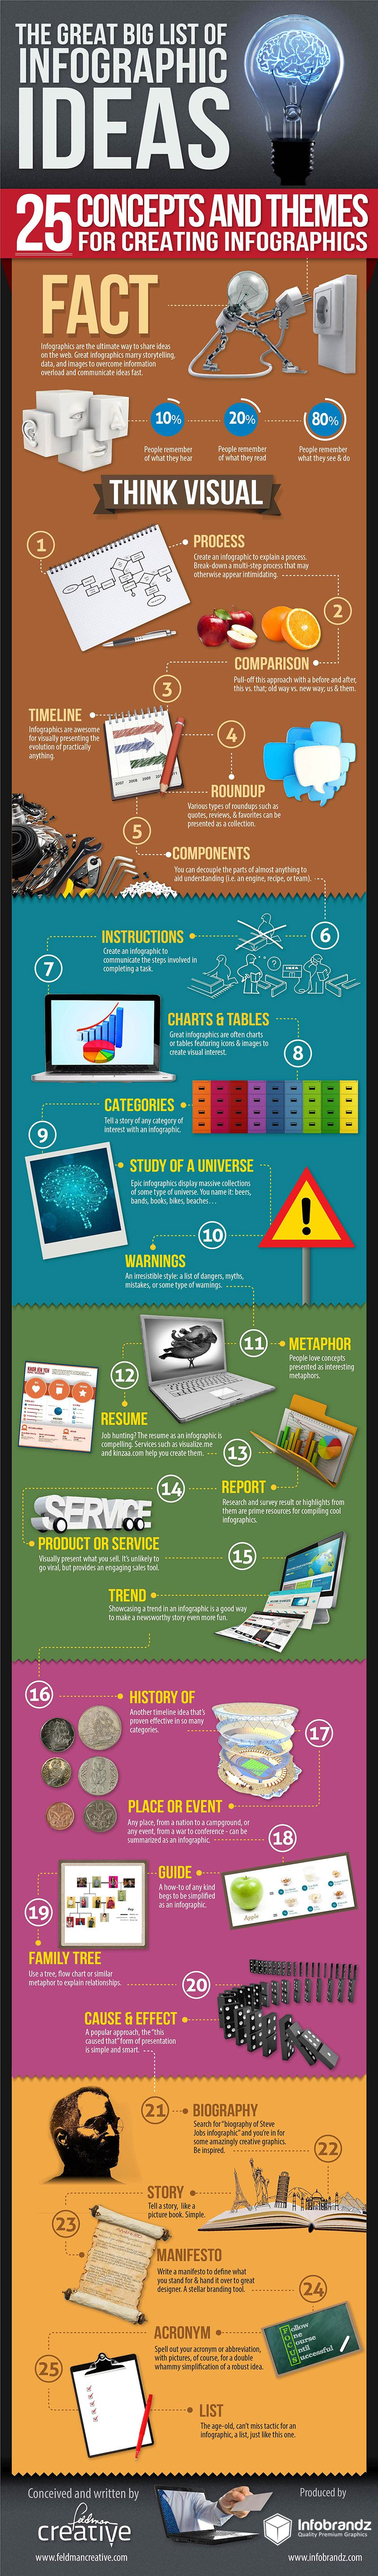 Great Big List Of Infographic Ideas #infographic